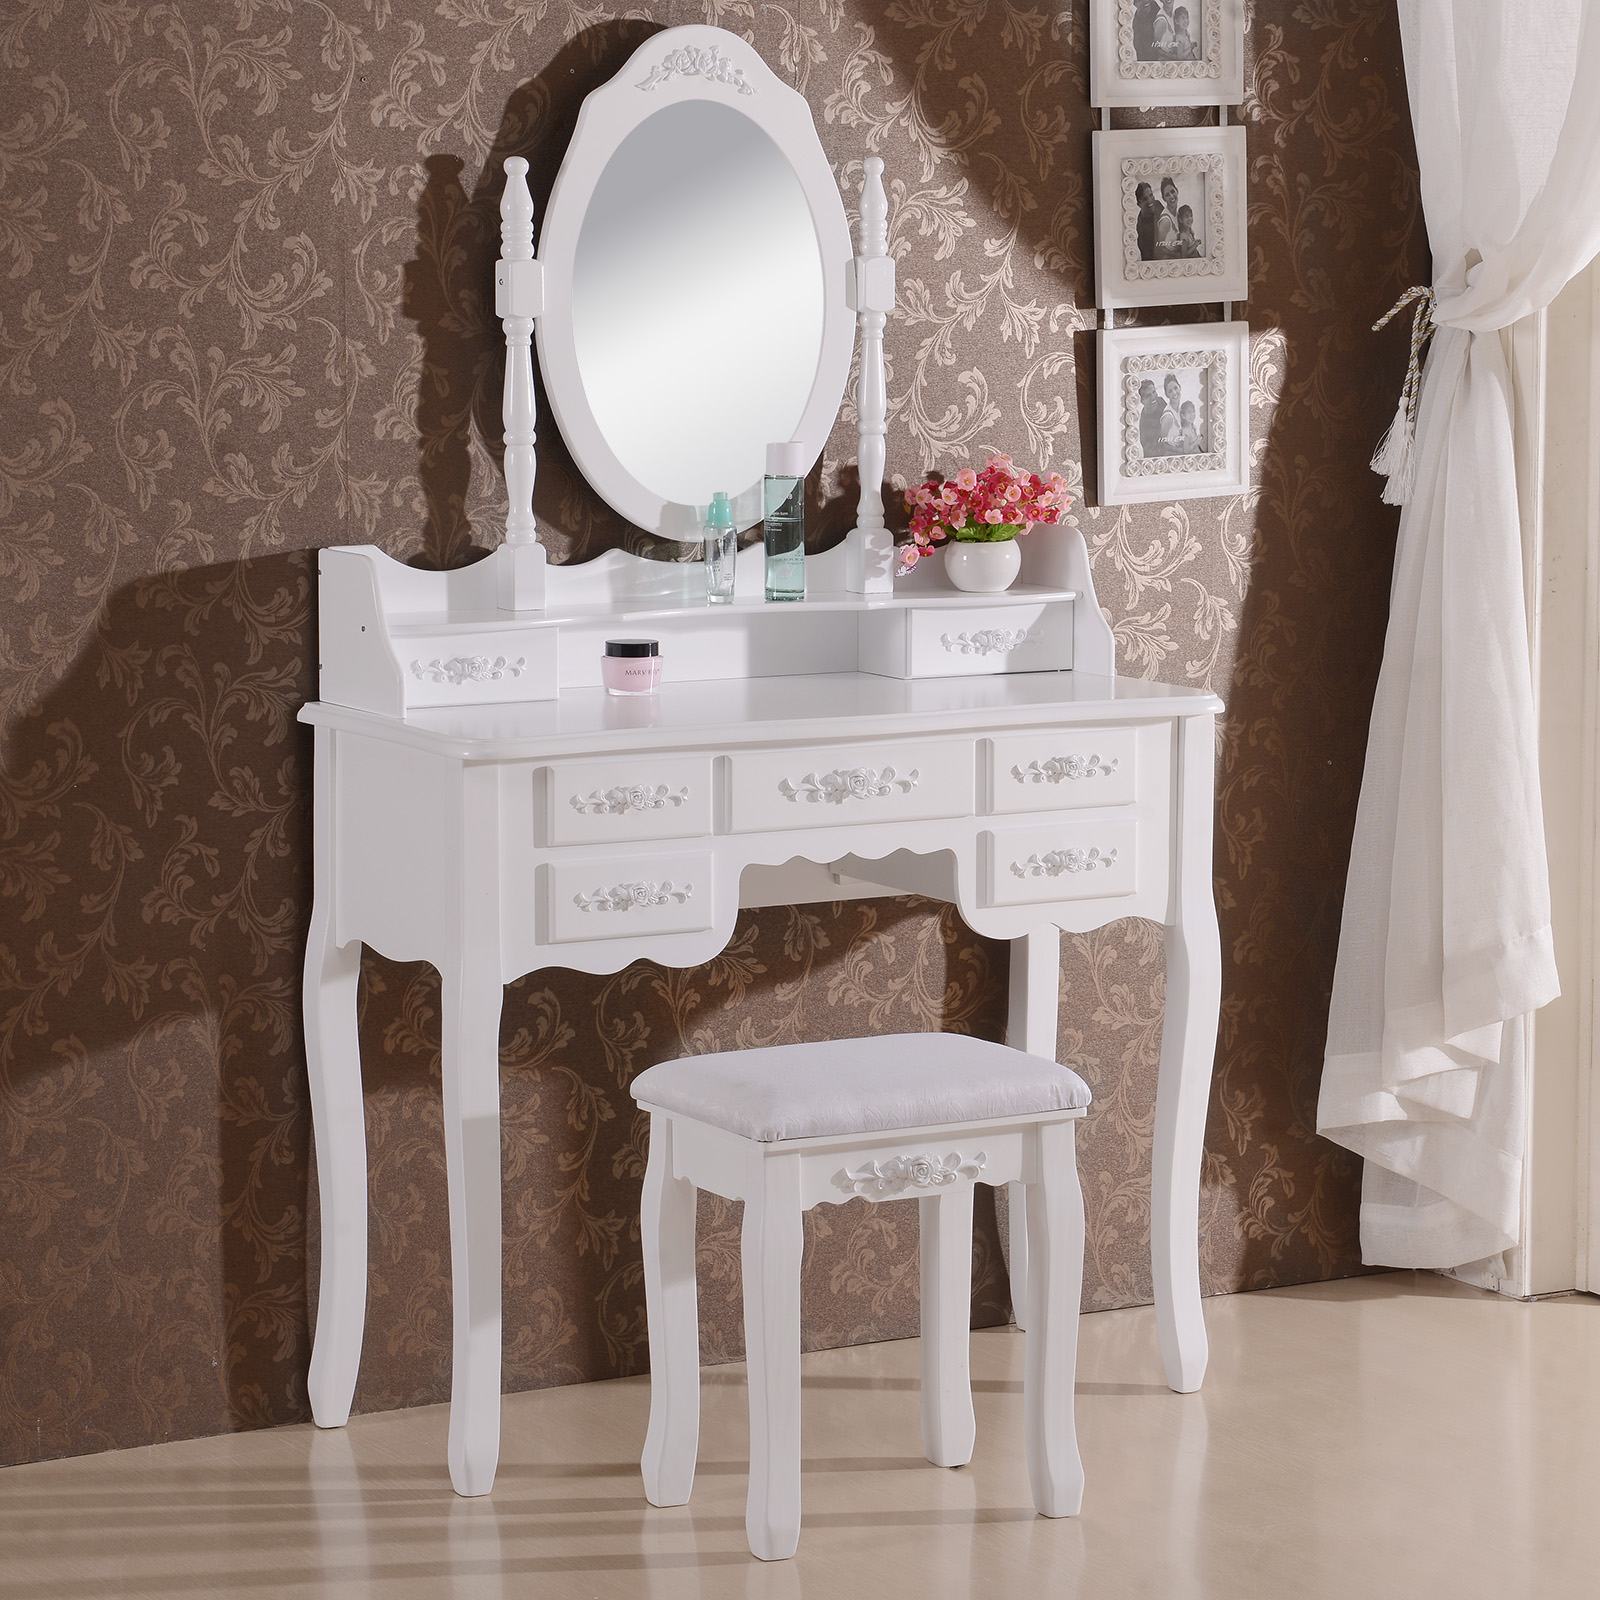 coiffeuse table de maquillage avec miroir et tabouret 6. Black Bedroom Furniture Sets. Home Design Ideas